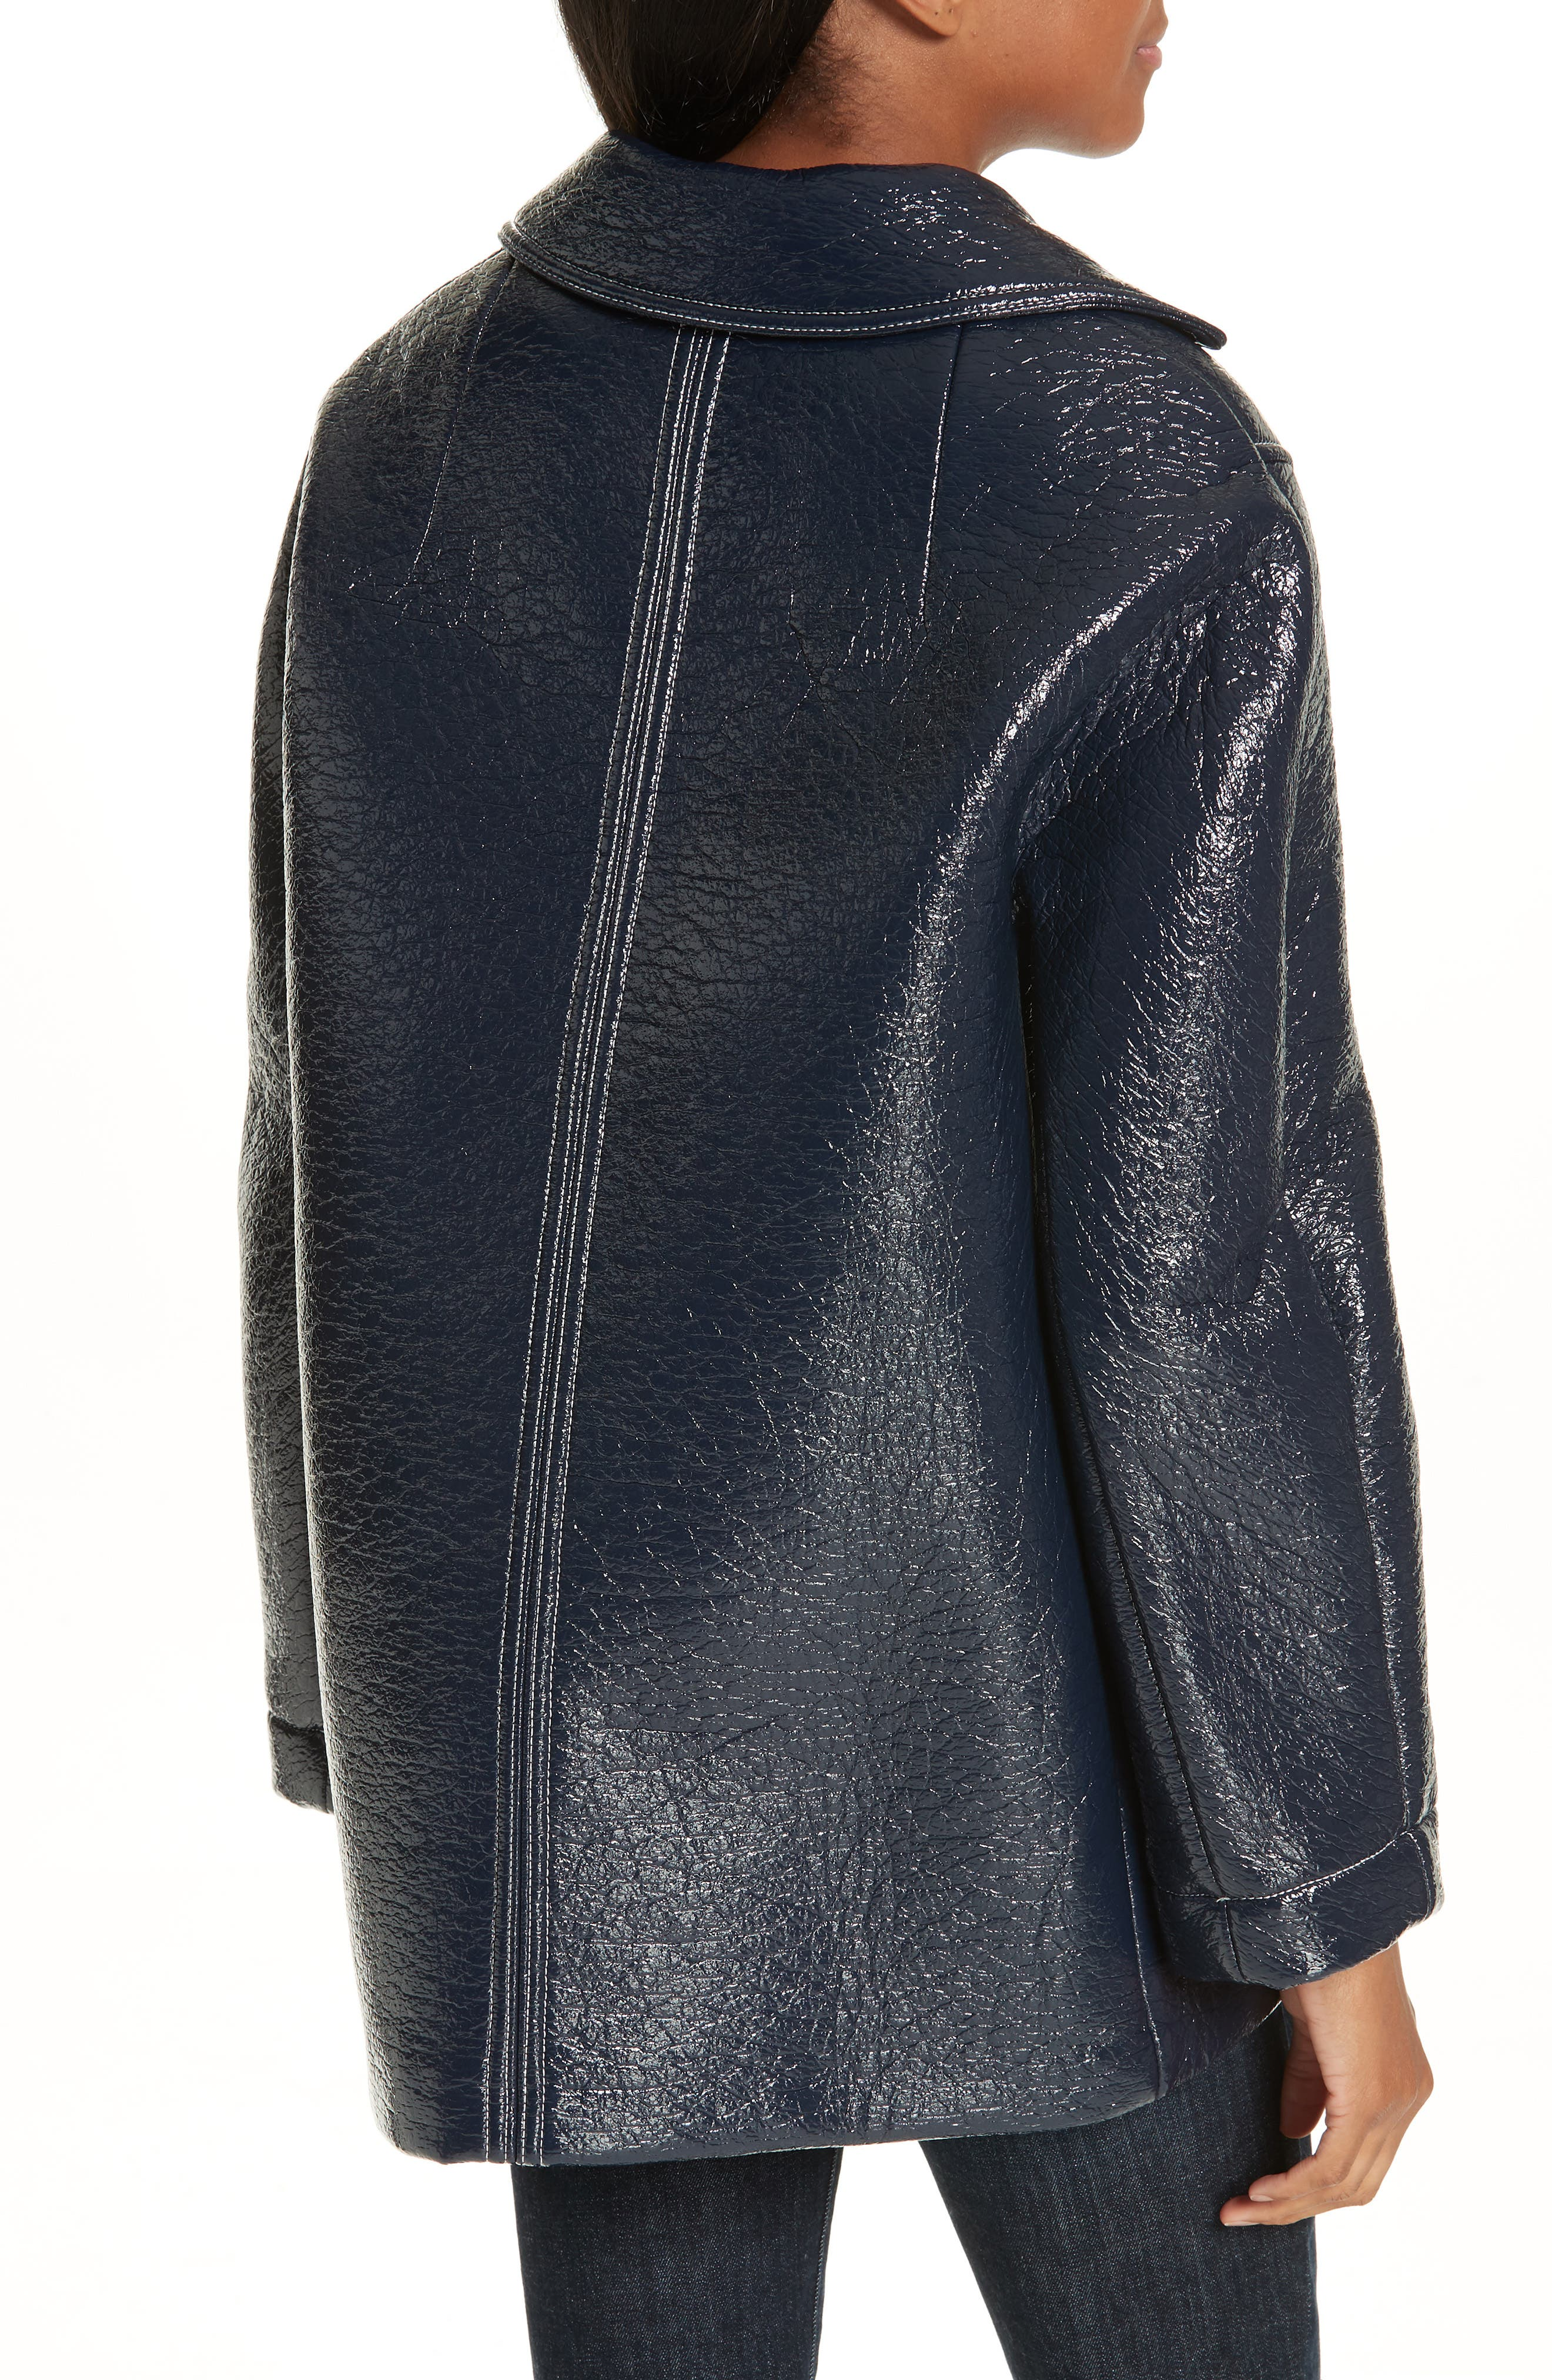 Volupia Faux Leather Coat,                             Alternate thumbnail 2, color,                             400